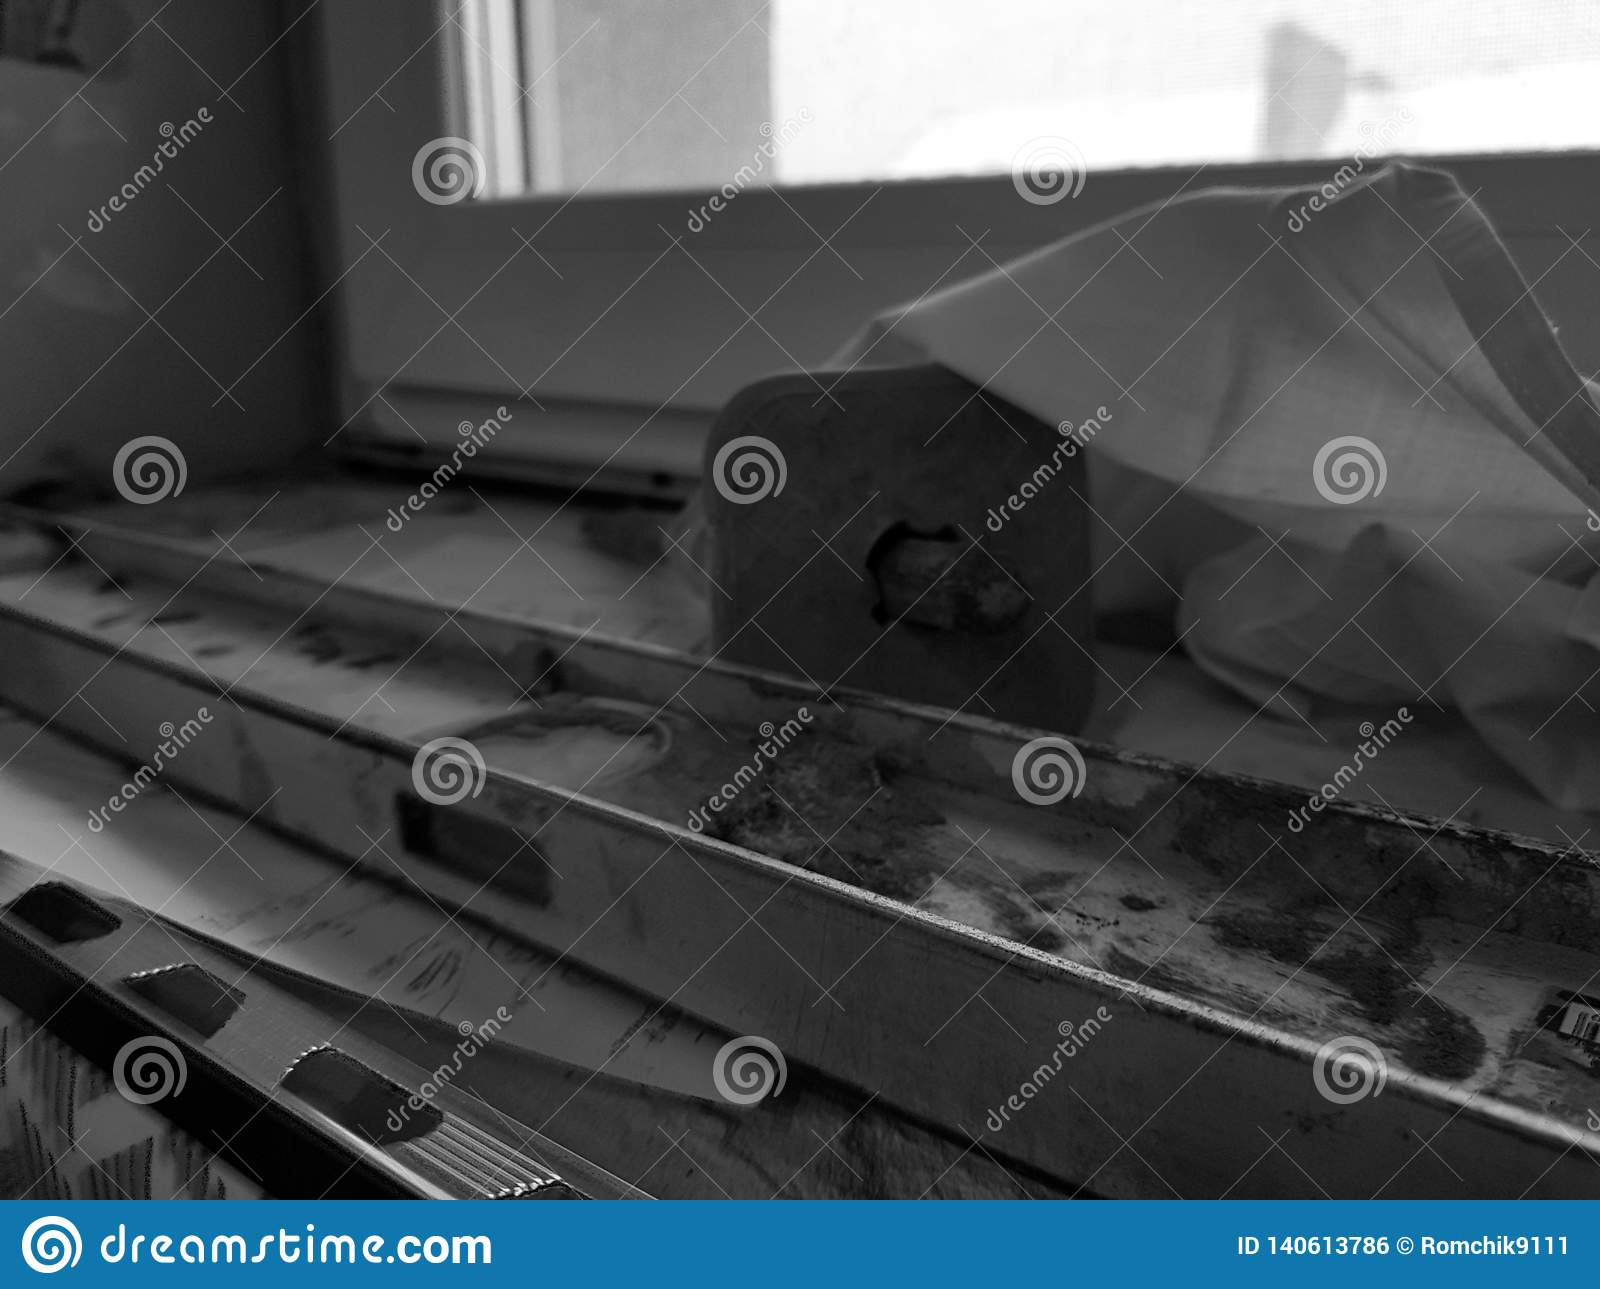 Repair - building with tools and hammer, chisel, building level